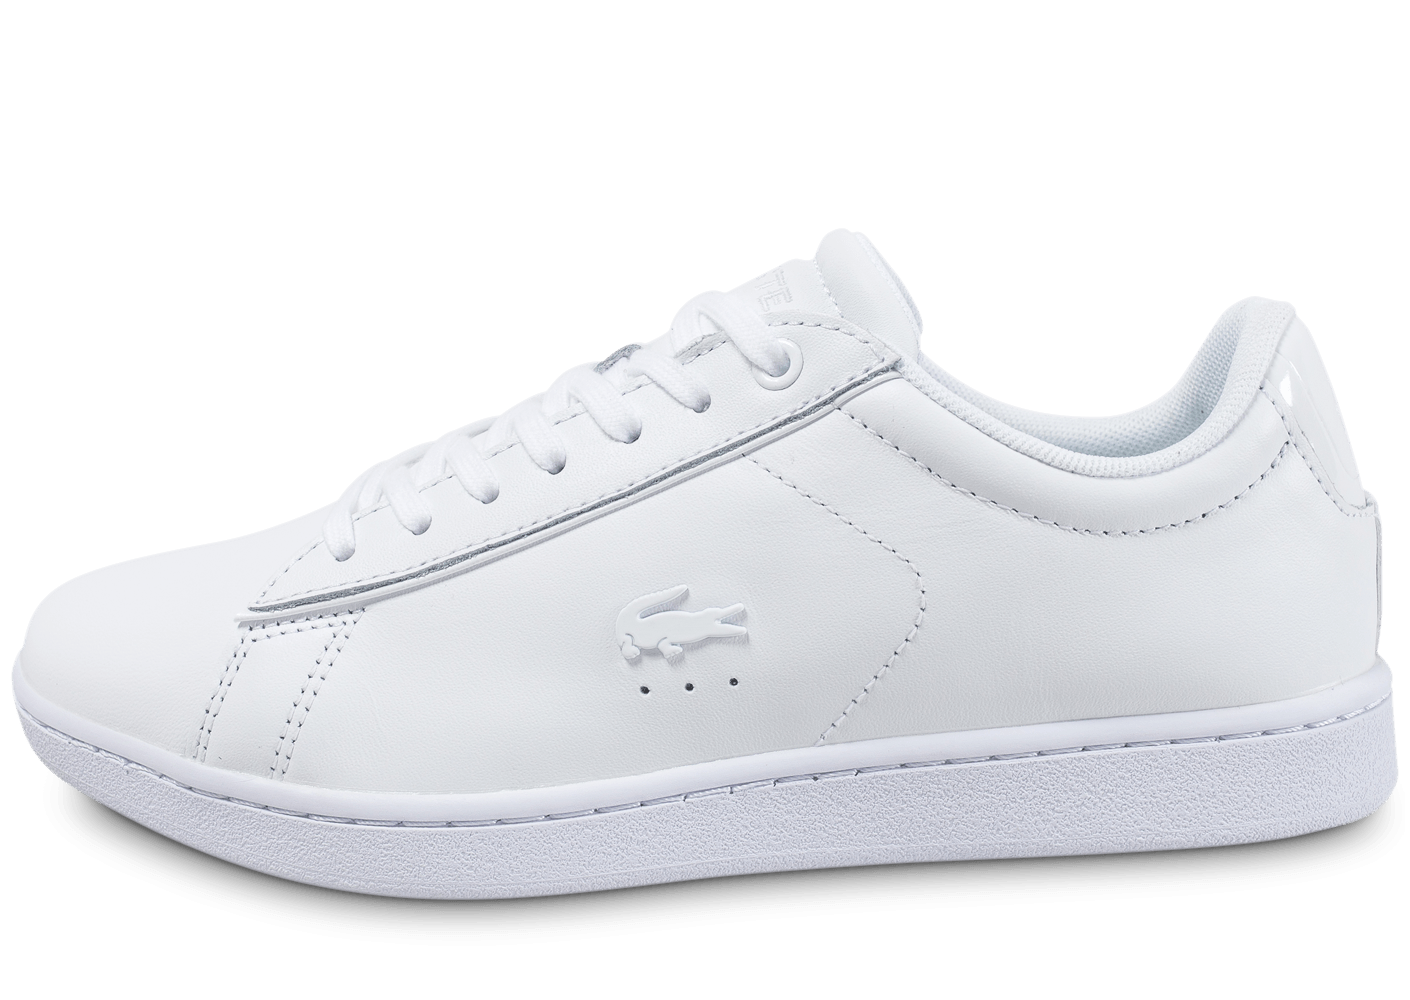 49edc16fbc Lacoste Carnaby Evo 417 SPW blanche - Chaussures Baskets femme - Chausport